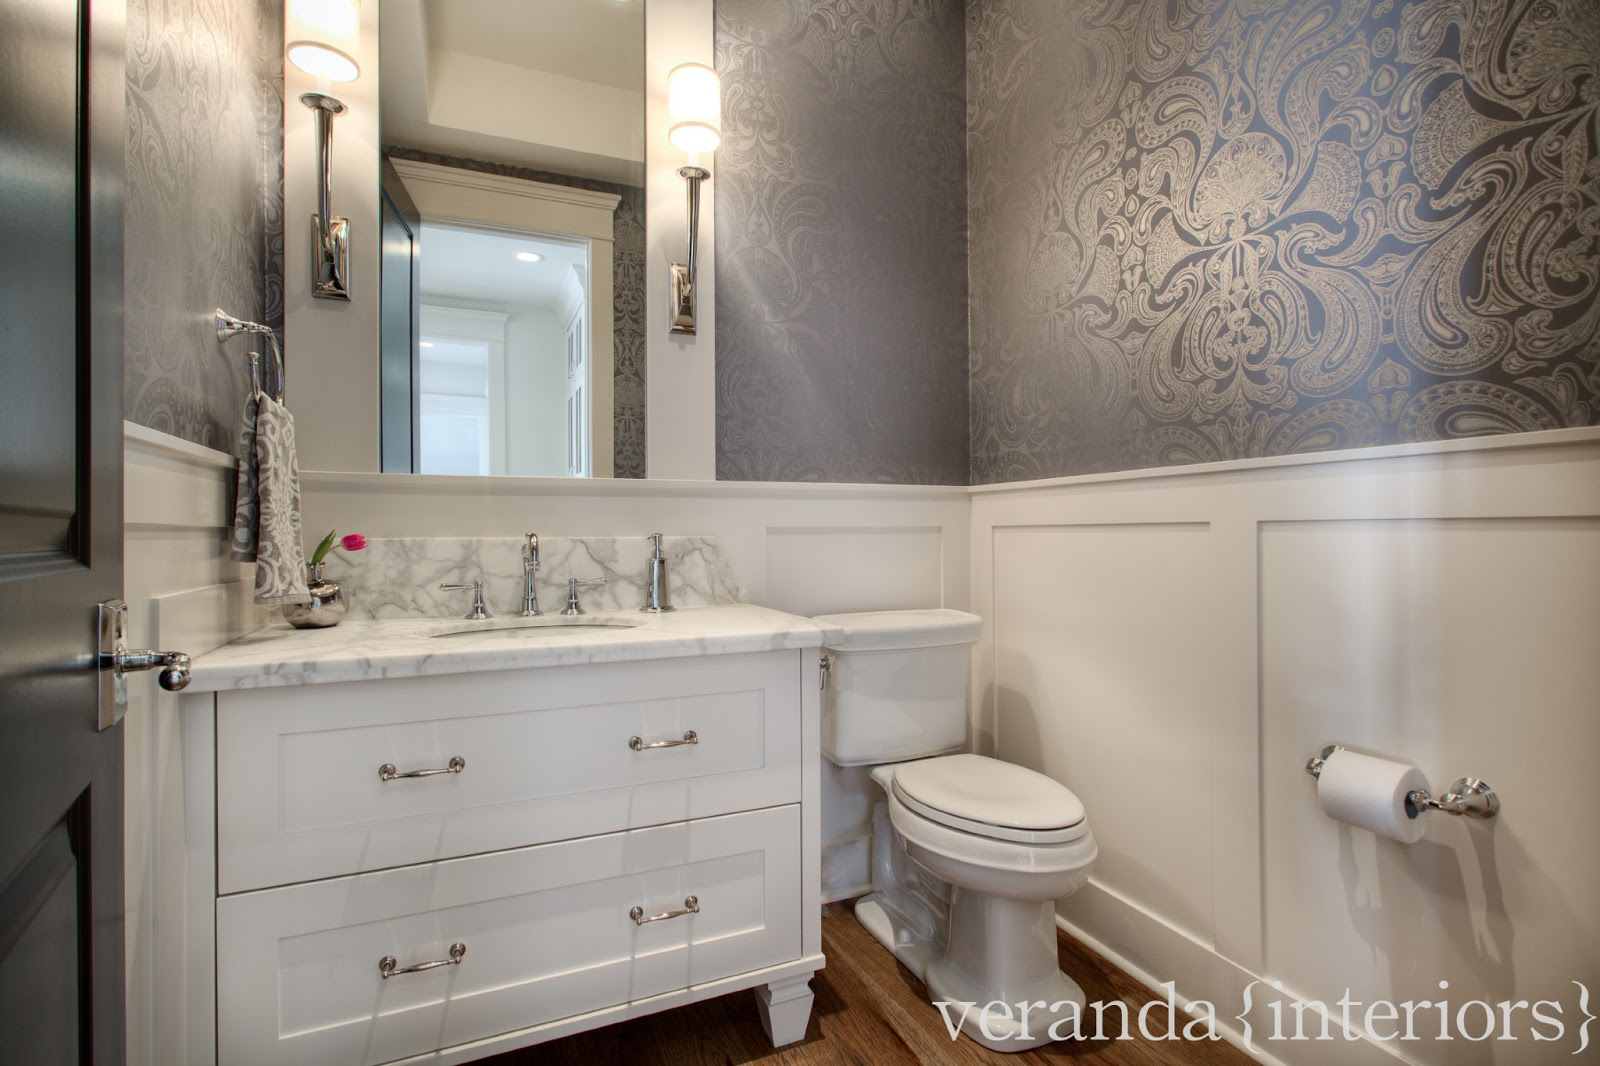 veranda interiors: Watermark {1} Powder Room